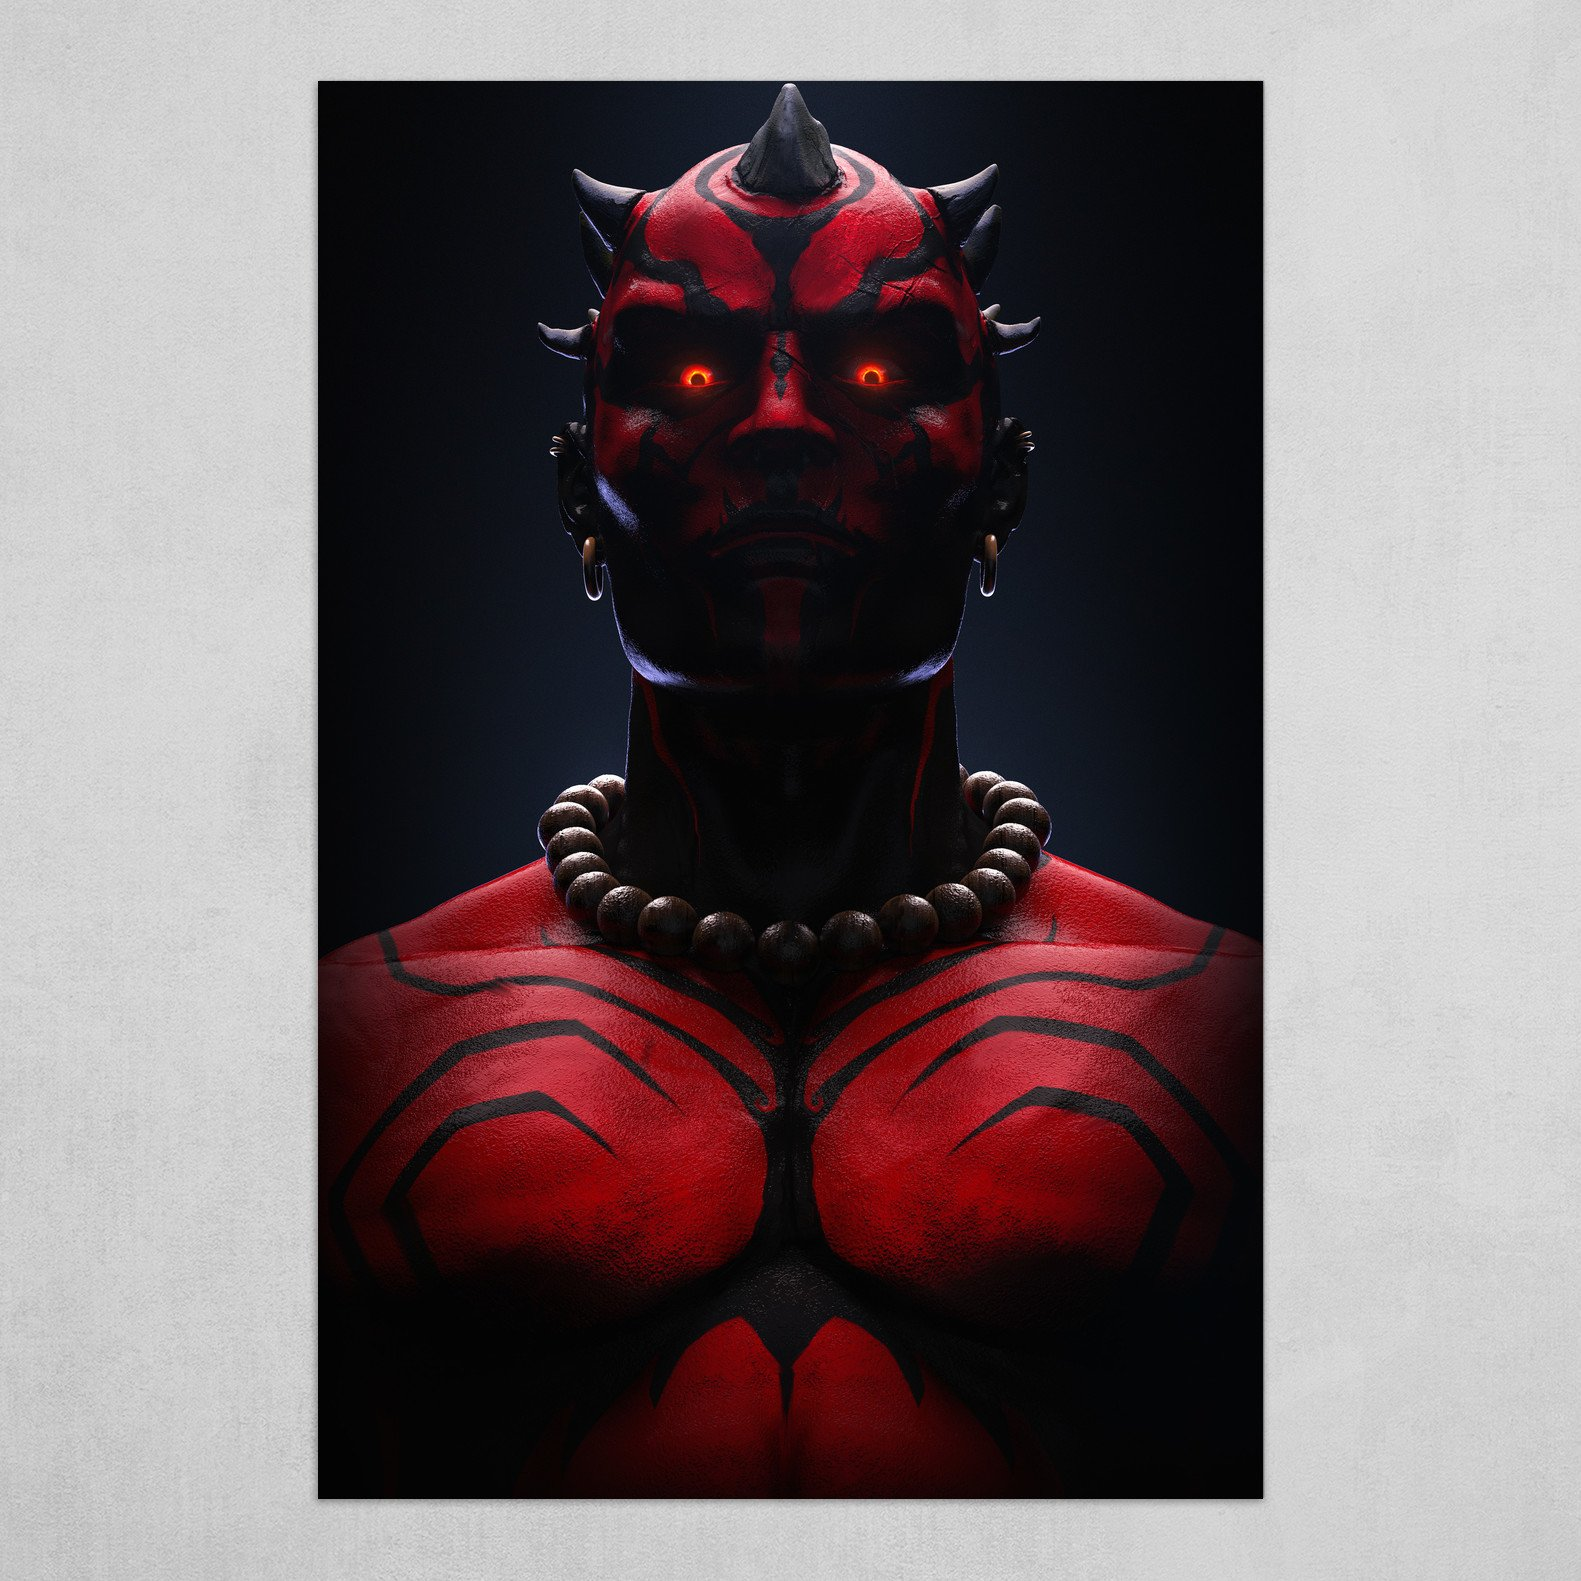 Darth Maul Death Stare